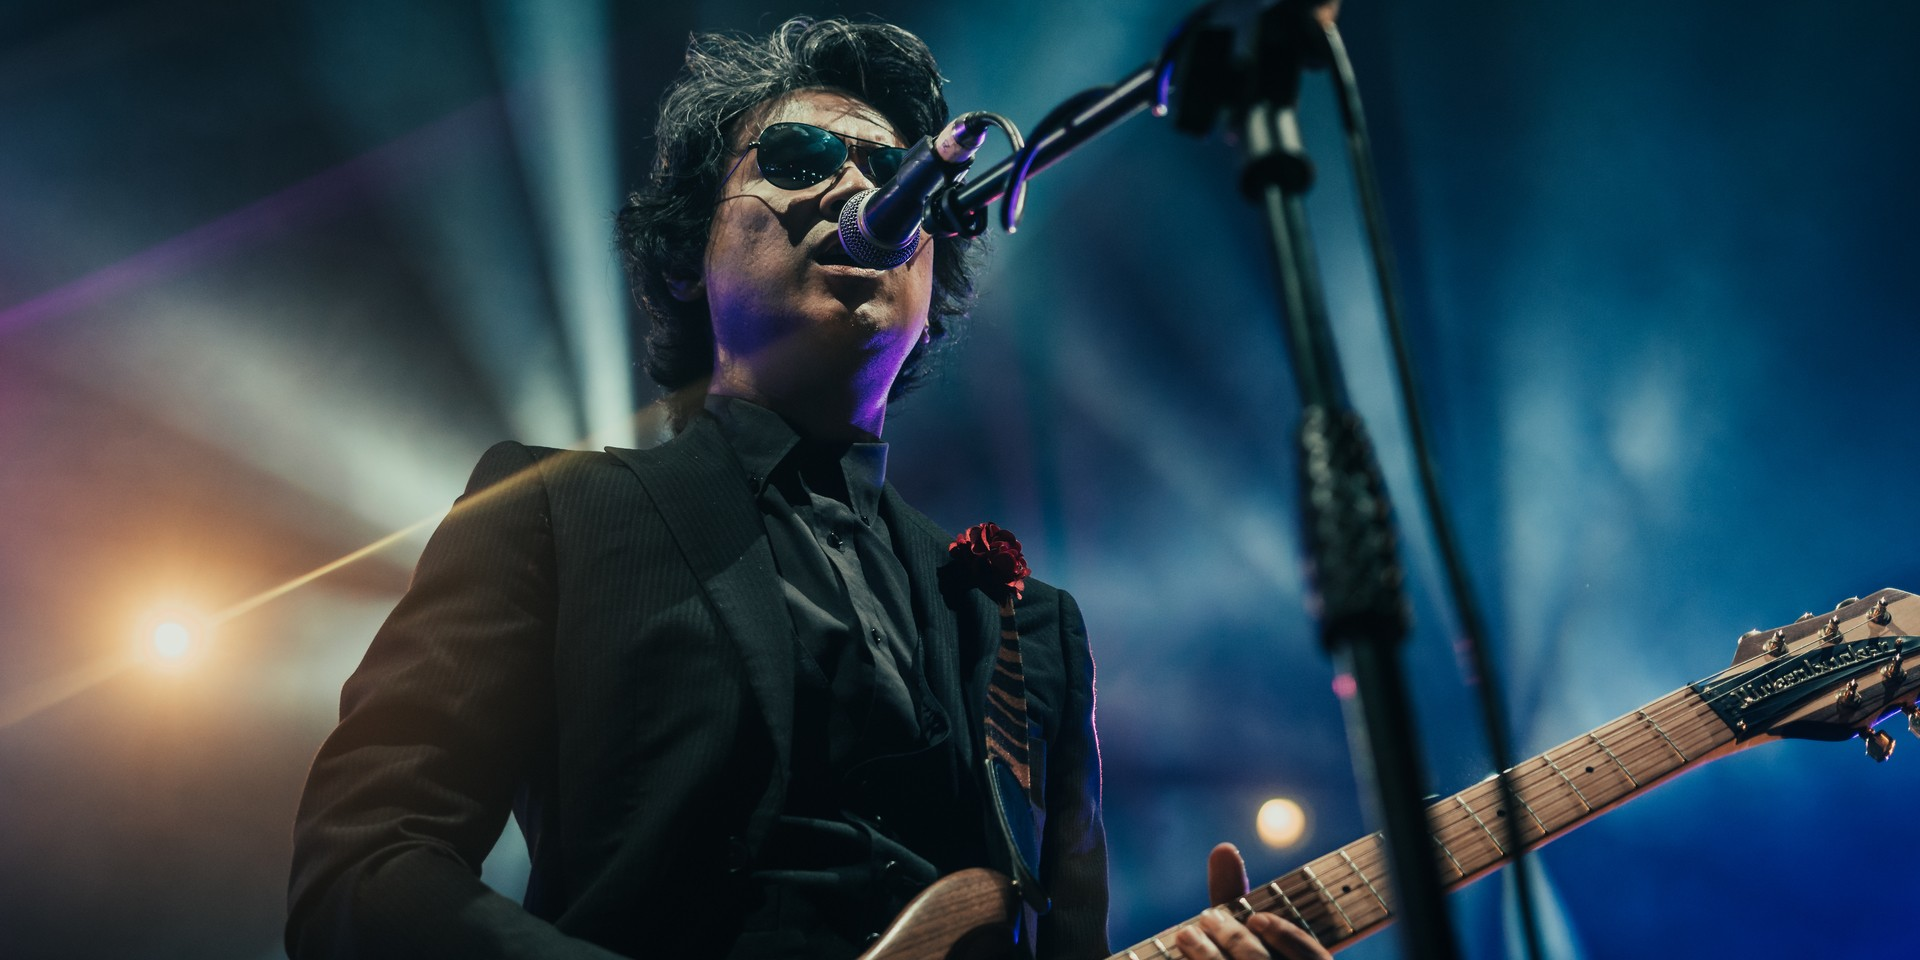 Ely Buendia to hold headlining concert this December